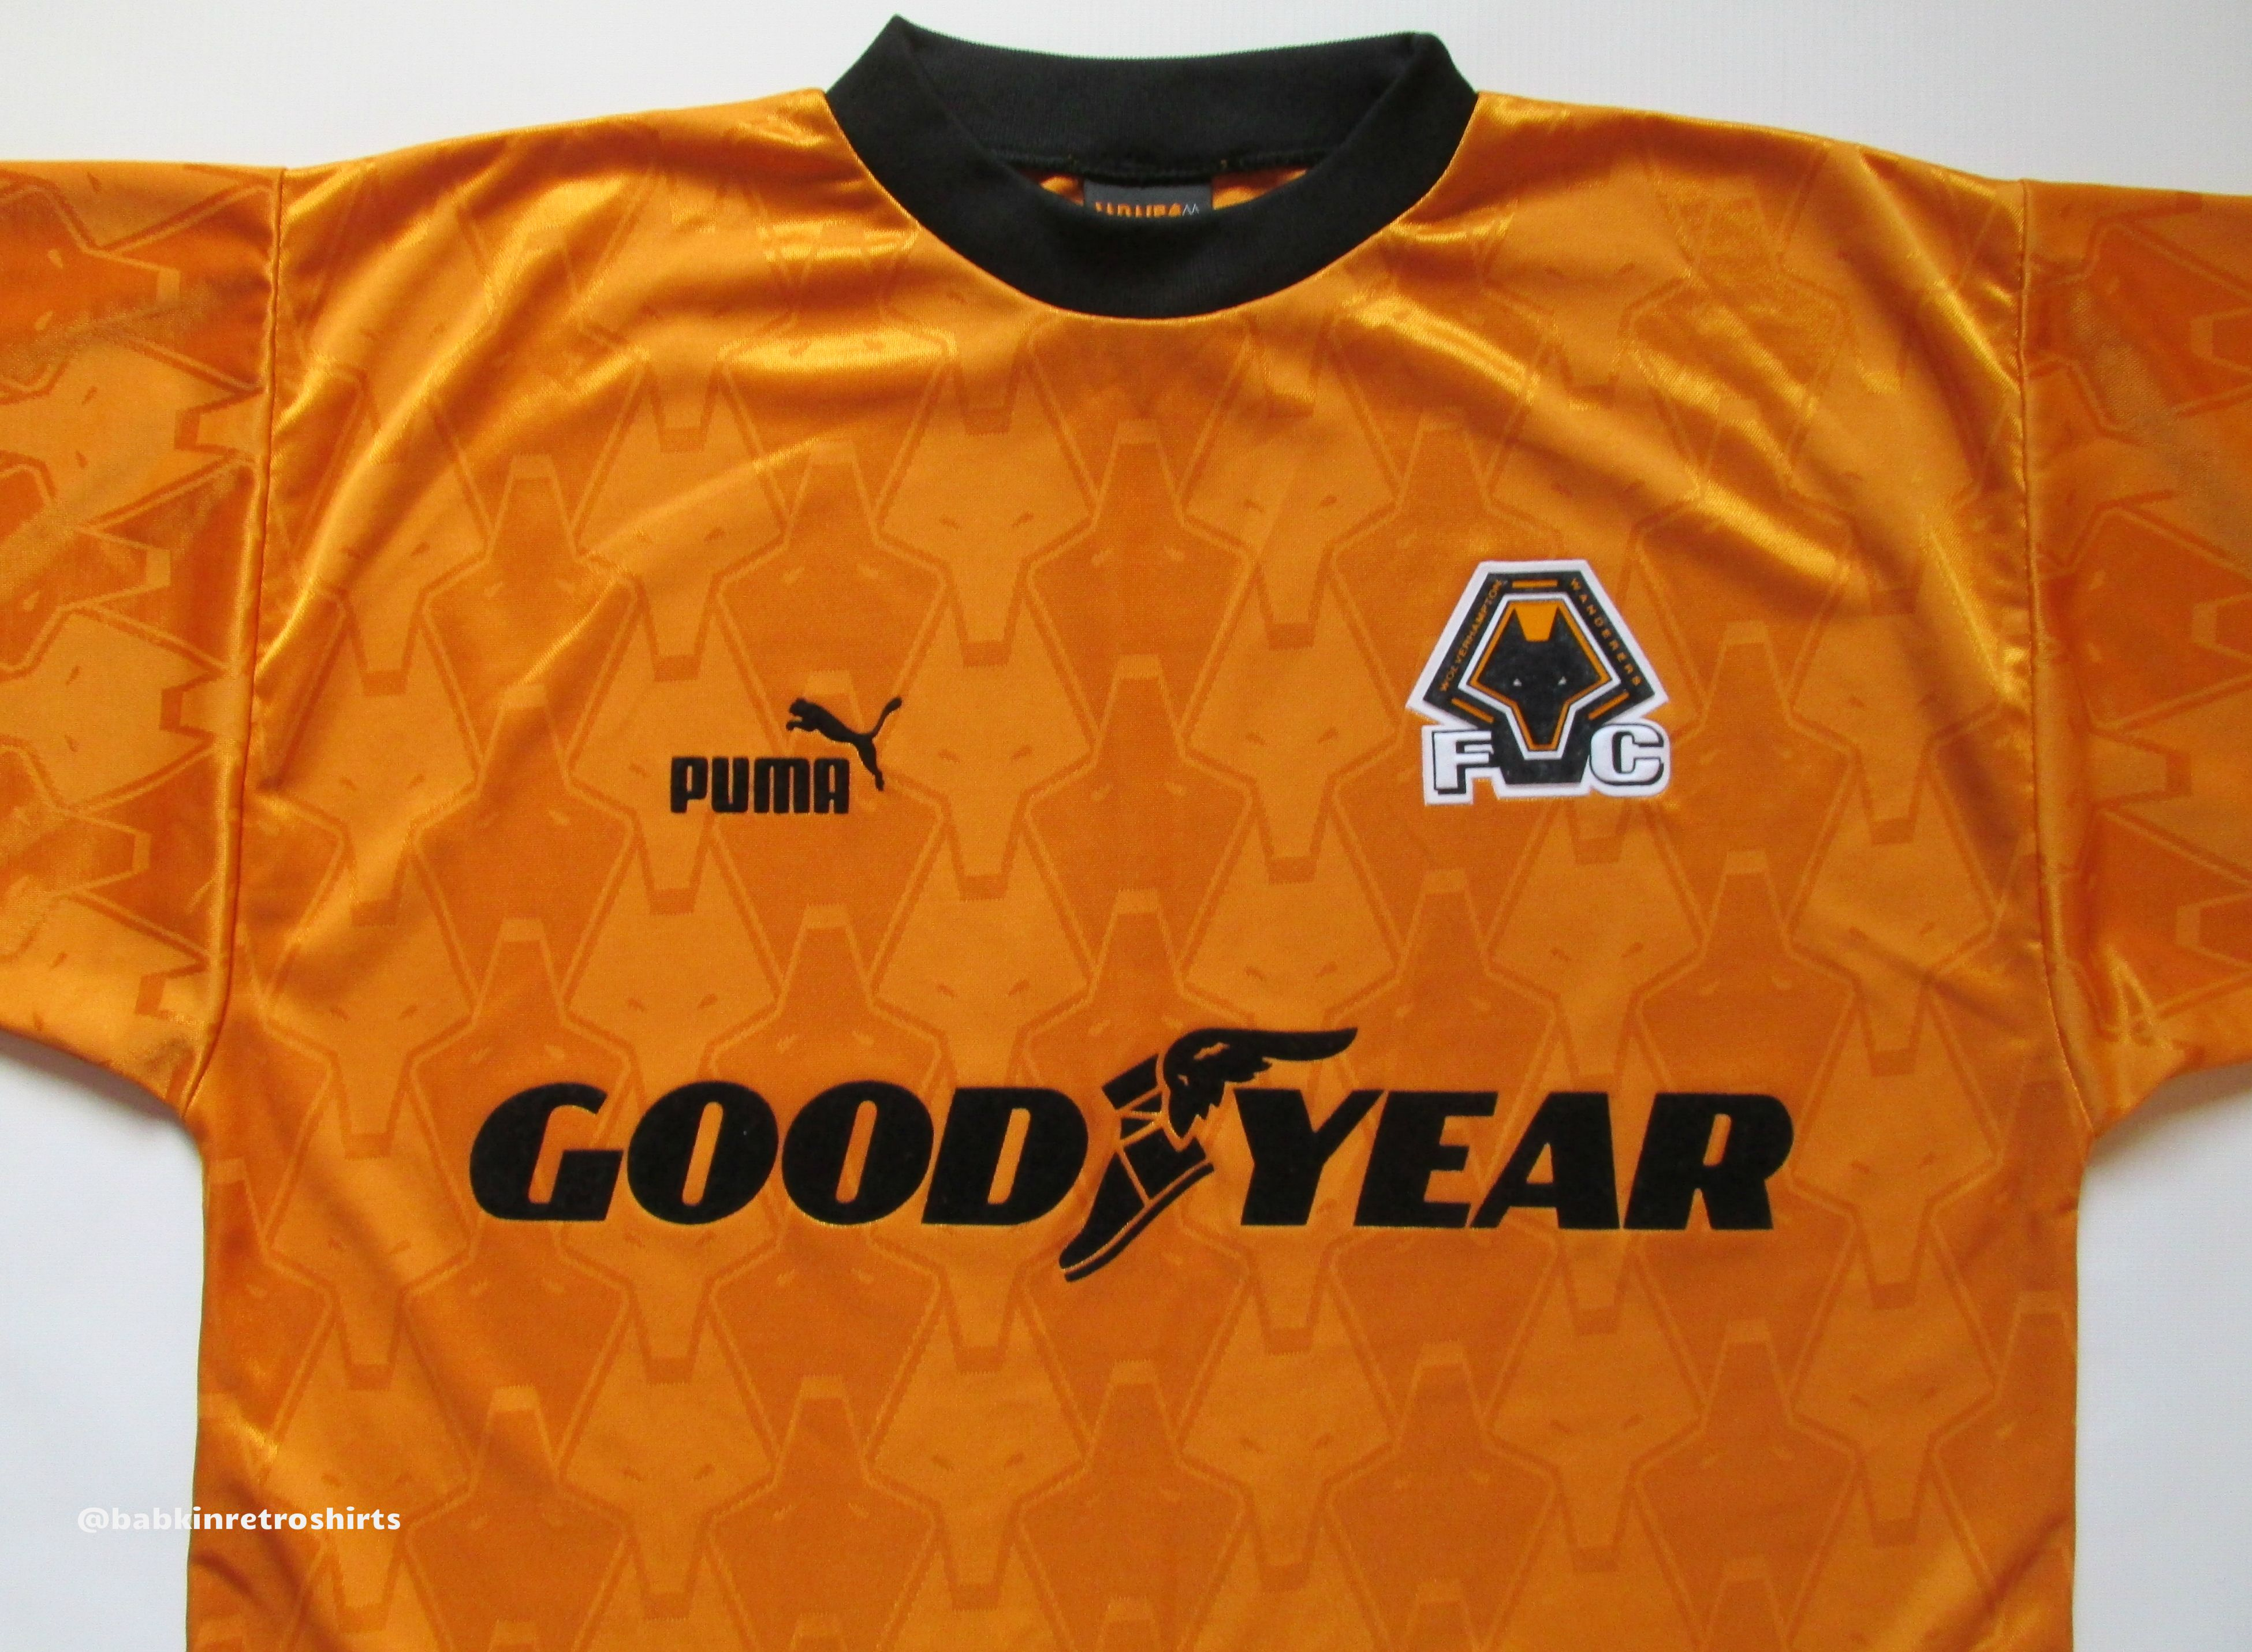 Wolverhampton Wanderers 1996 1997 1998 training football shirt by Puma  vintage 90s soccer wolves retro England  jersey  forsale  wolves  puma   vintage  90s ... 825727e73